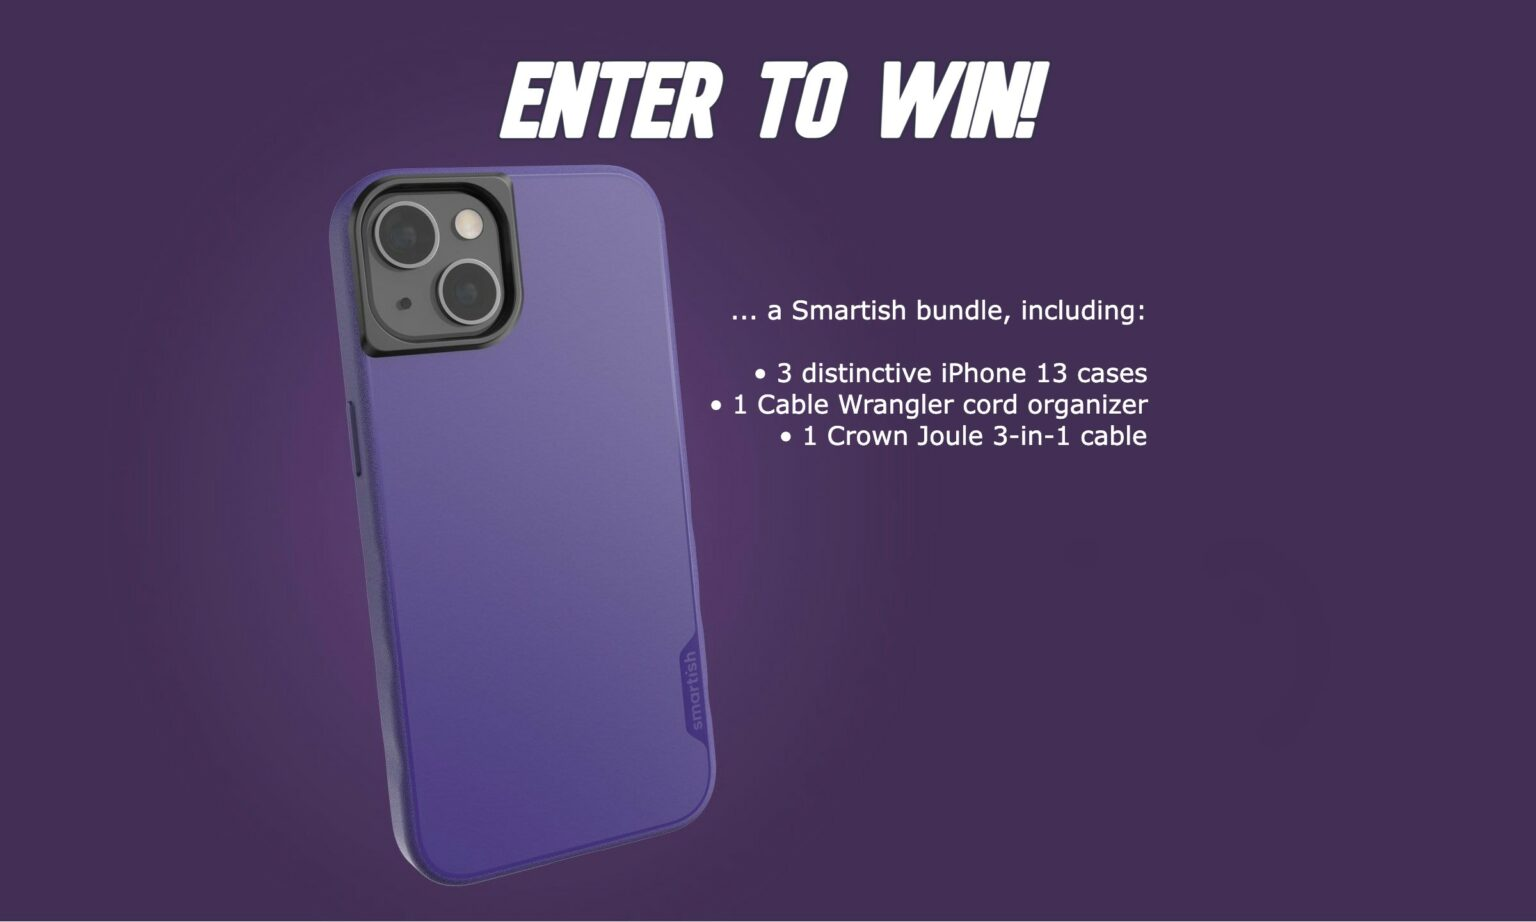 Win an iPhone 13 case bundle from Smartish [Cult of Mac giveaway]